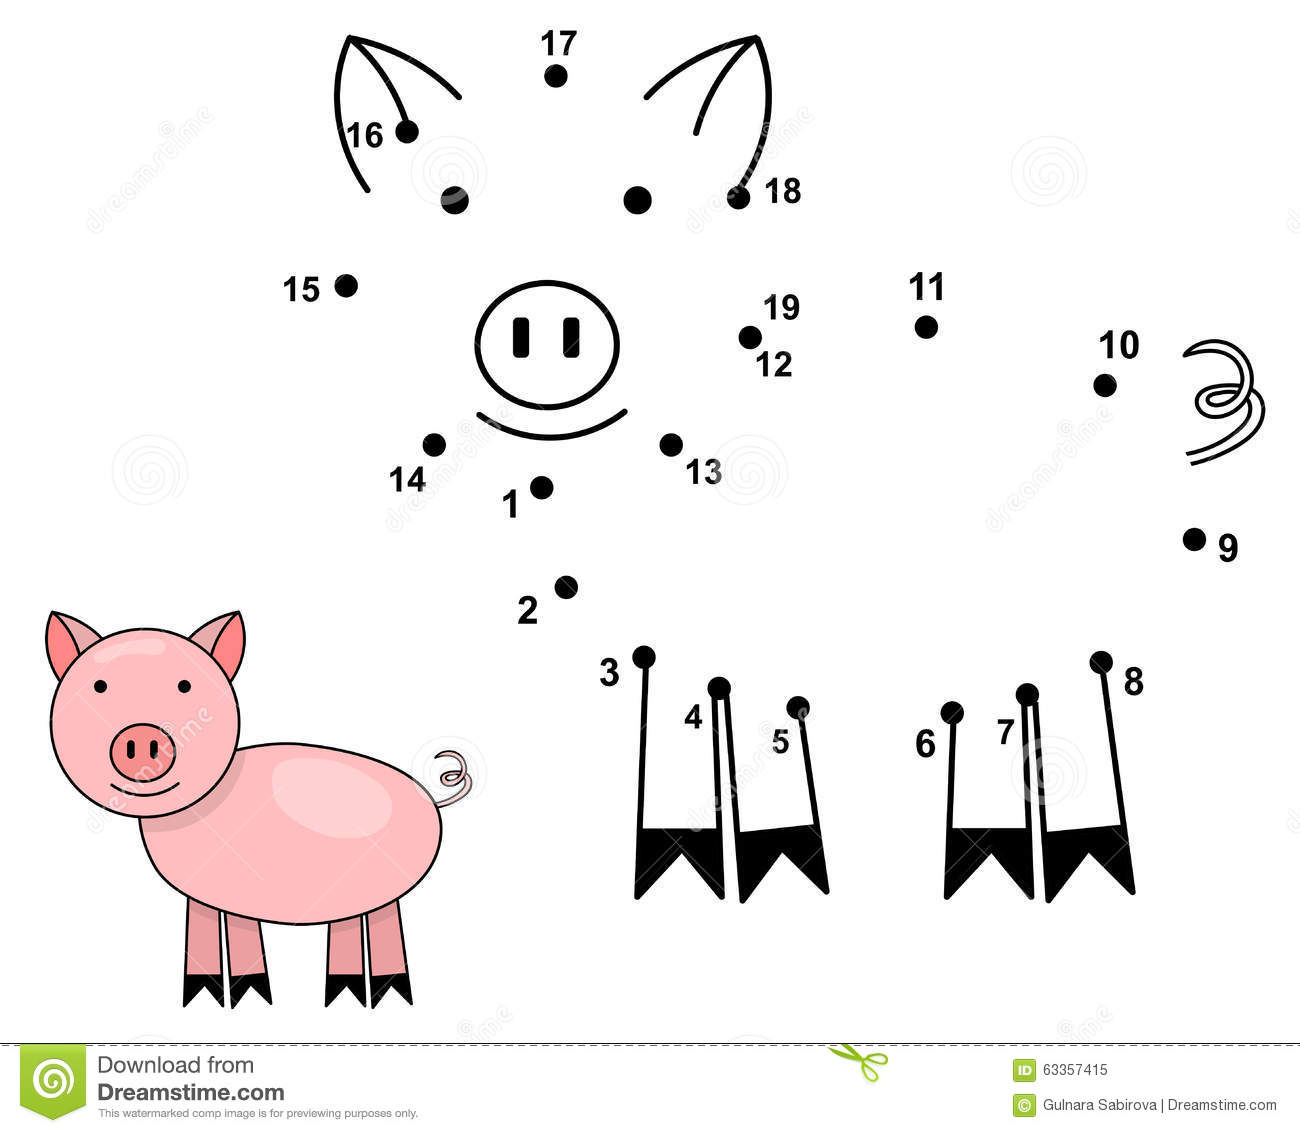 Stock Illustration Connect Dots To Draw Cute Pig Educational Numbers Game Children Vector Illustration Image63357415 on Farm Animal Dot To Dots